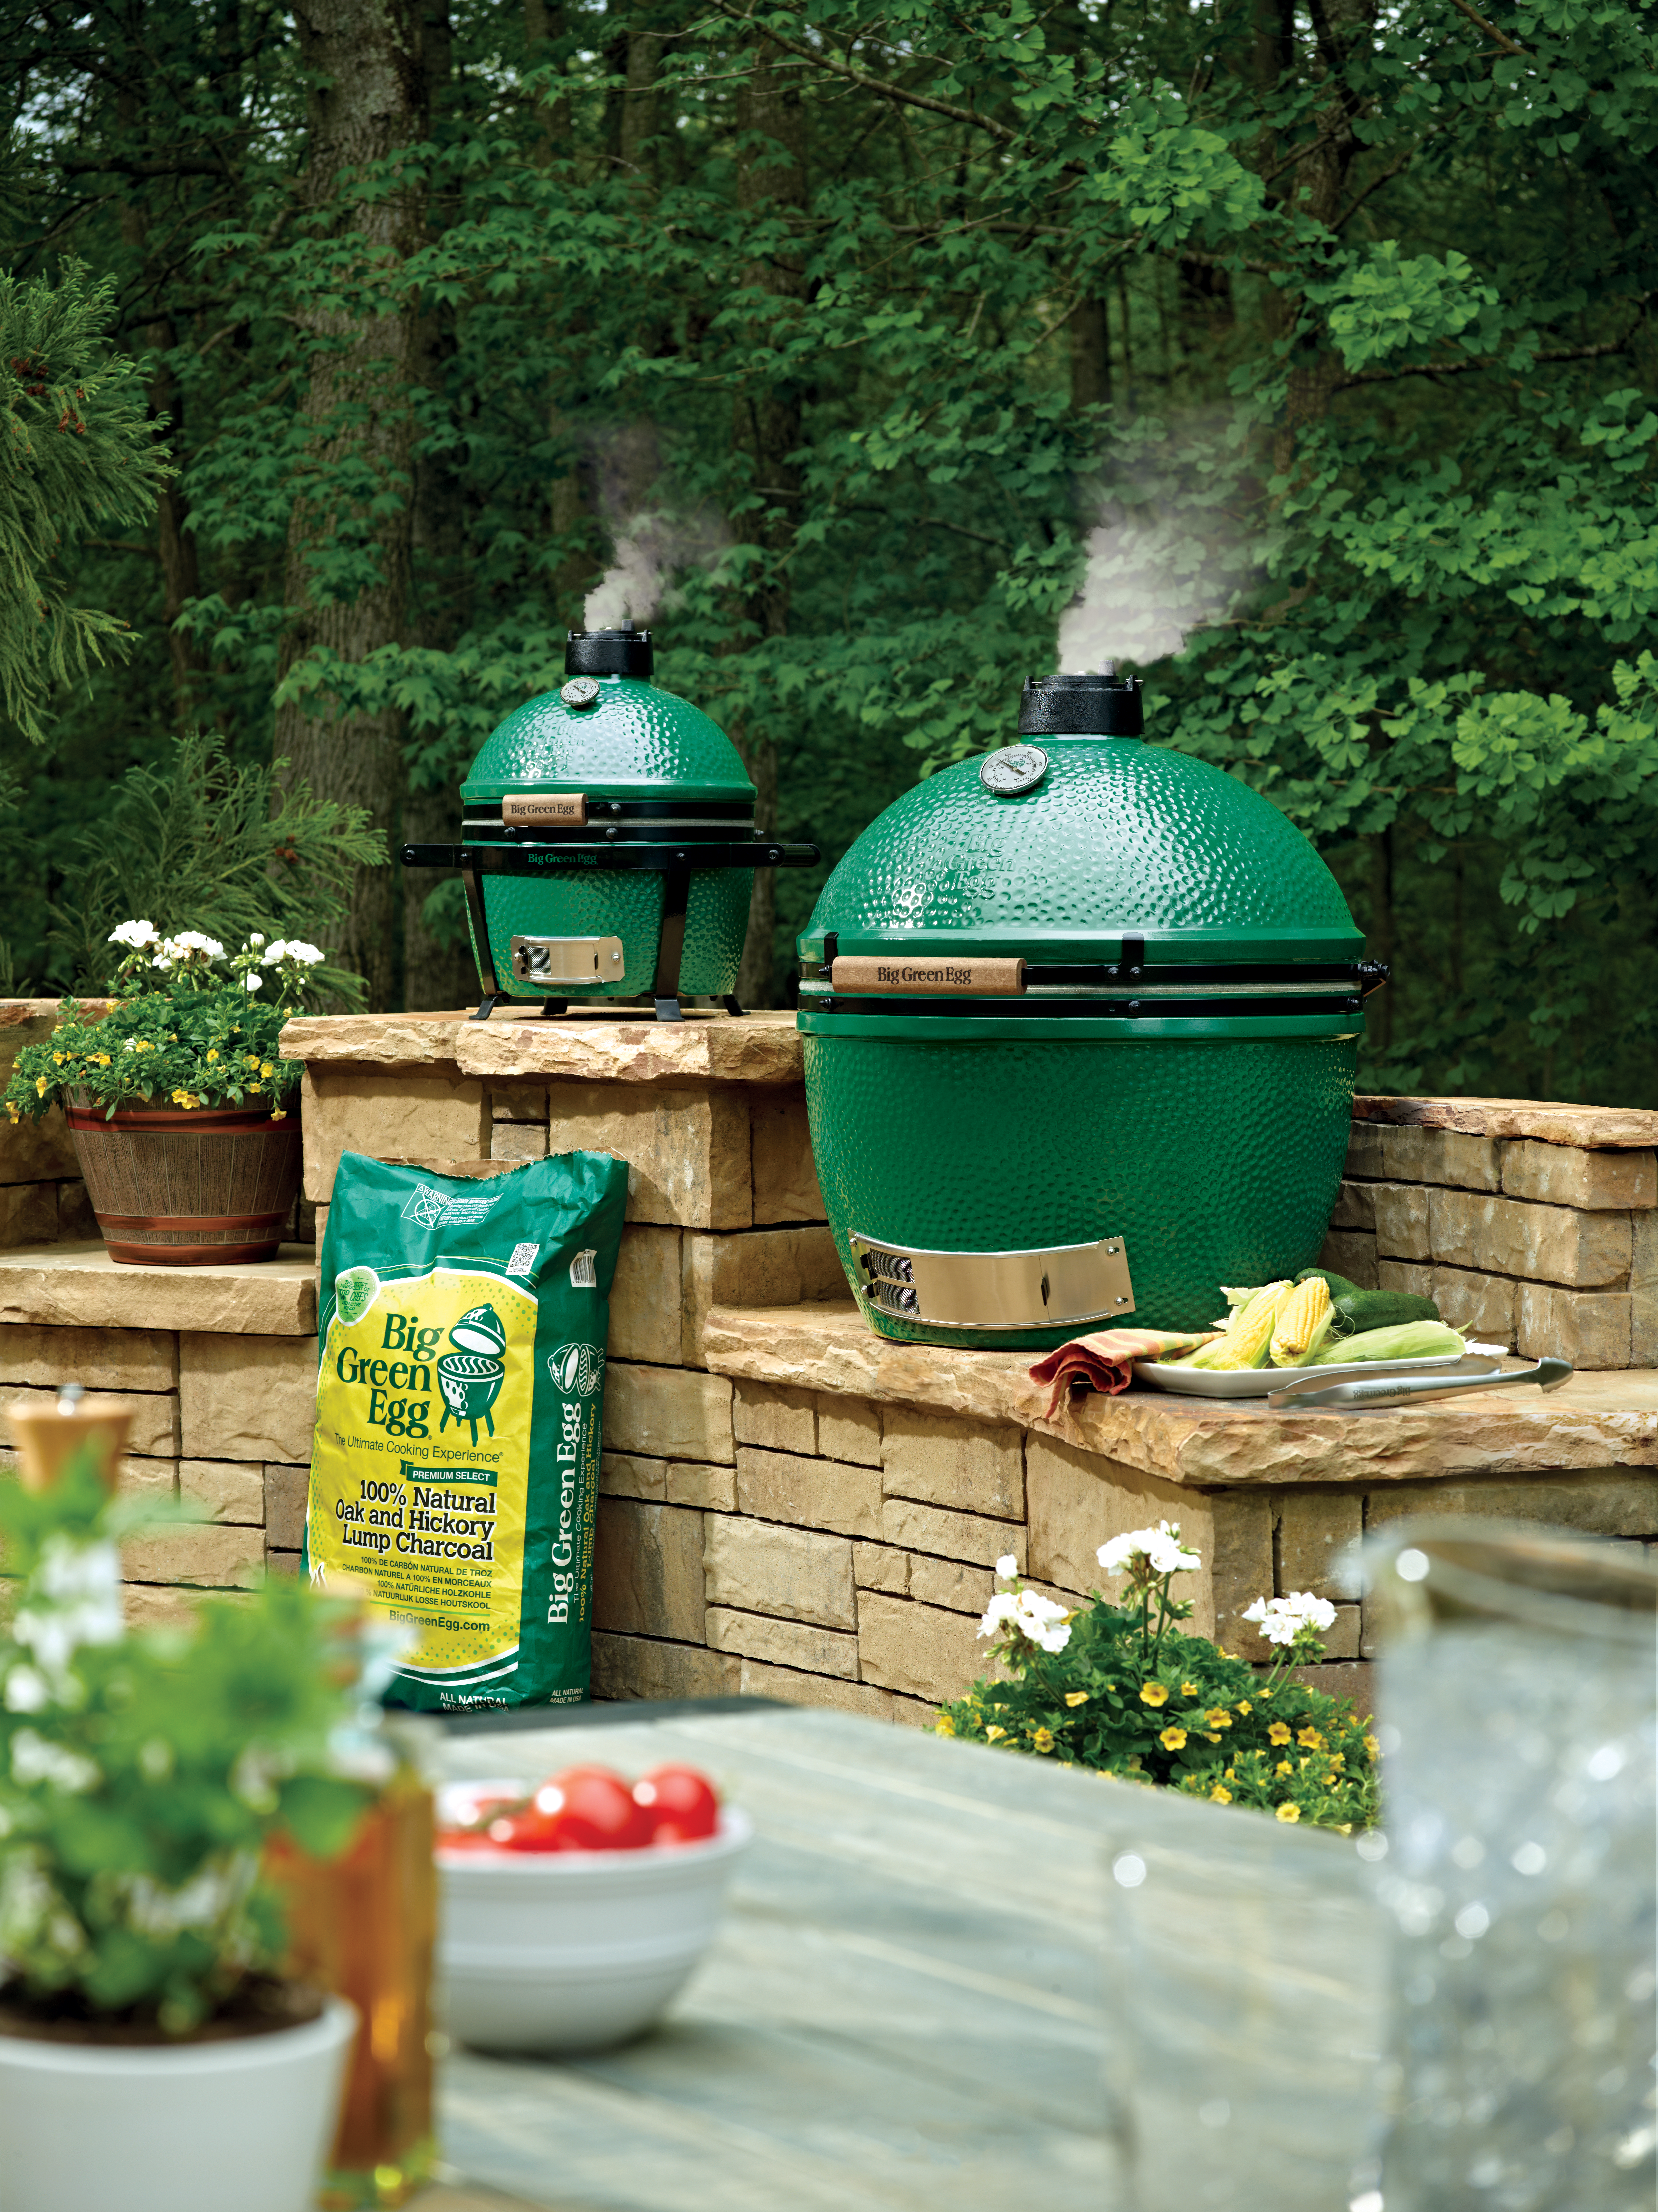 Host a cookout to get to know your new neighbors